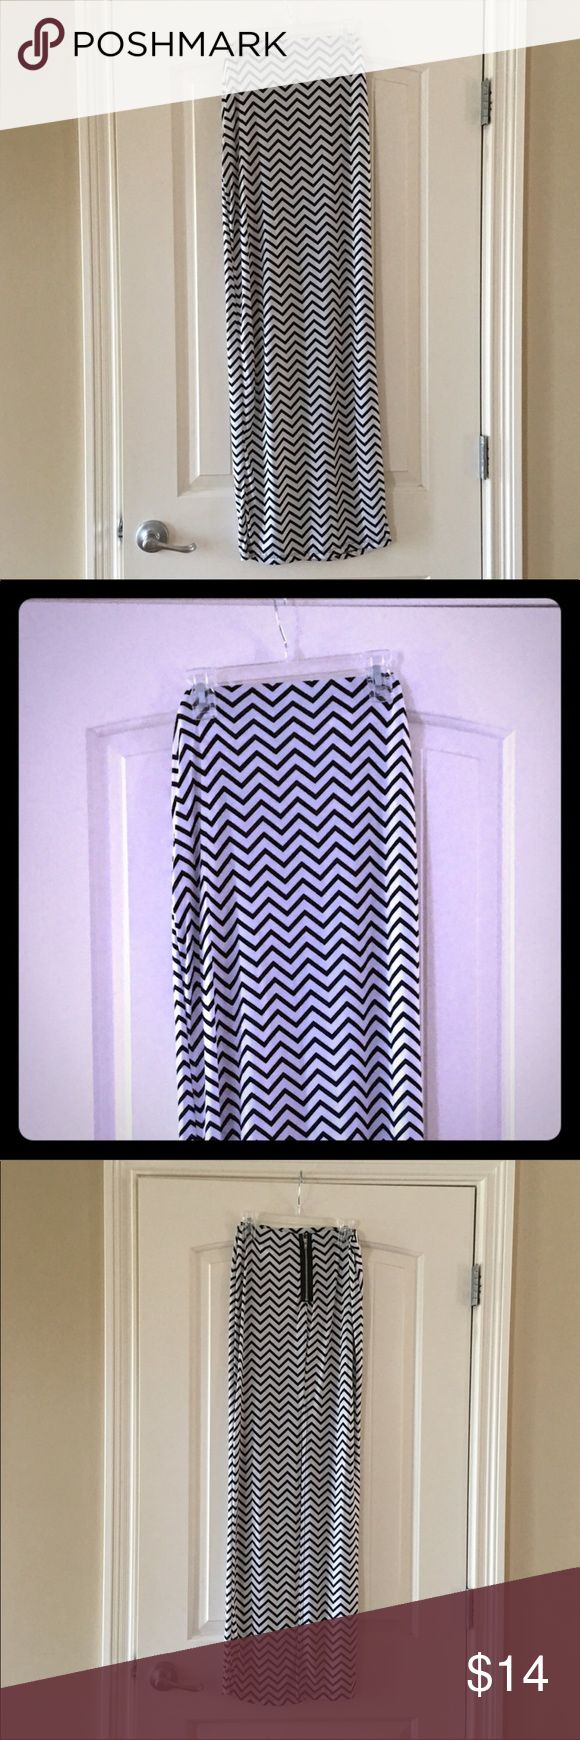 """Windsor Black & White Chevron Maxi Skirt Sz S Windsor black and white chevron maxi skirt Size S. Slit and non functional zipper on the back of the skirt. Very comfortable. Length is about 41"""". Kept in a smoke free home. Windsor Skirts Maxi"""